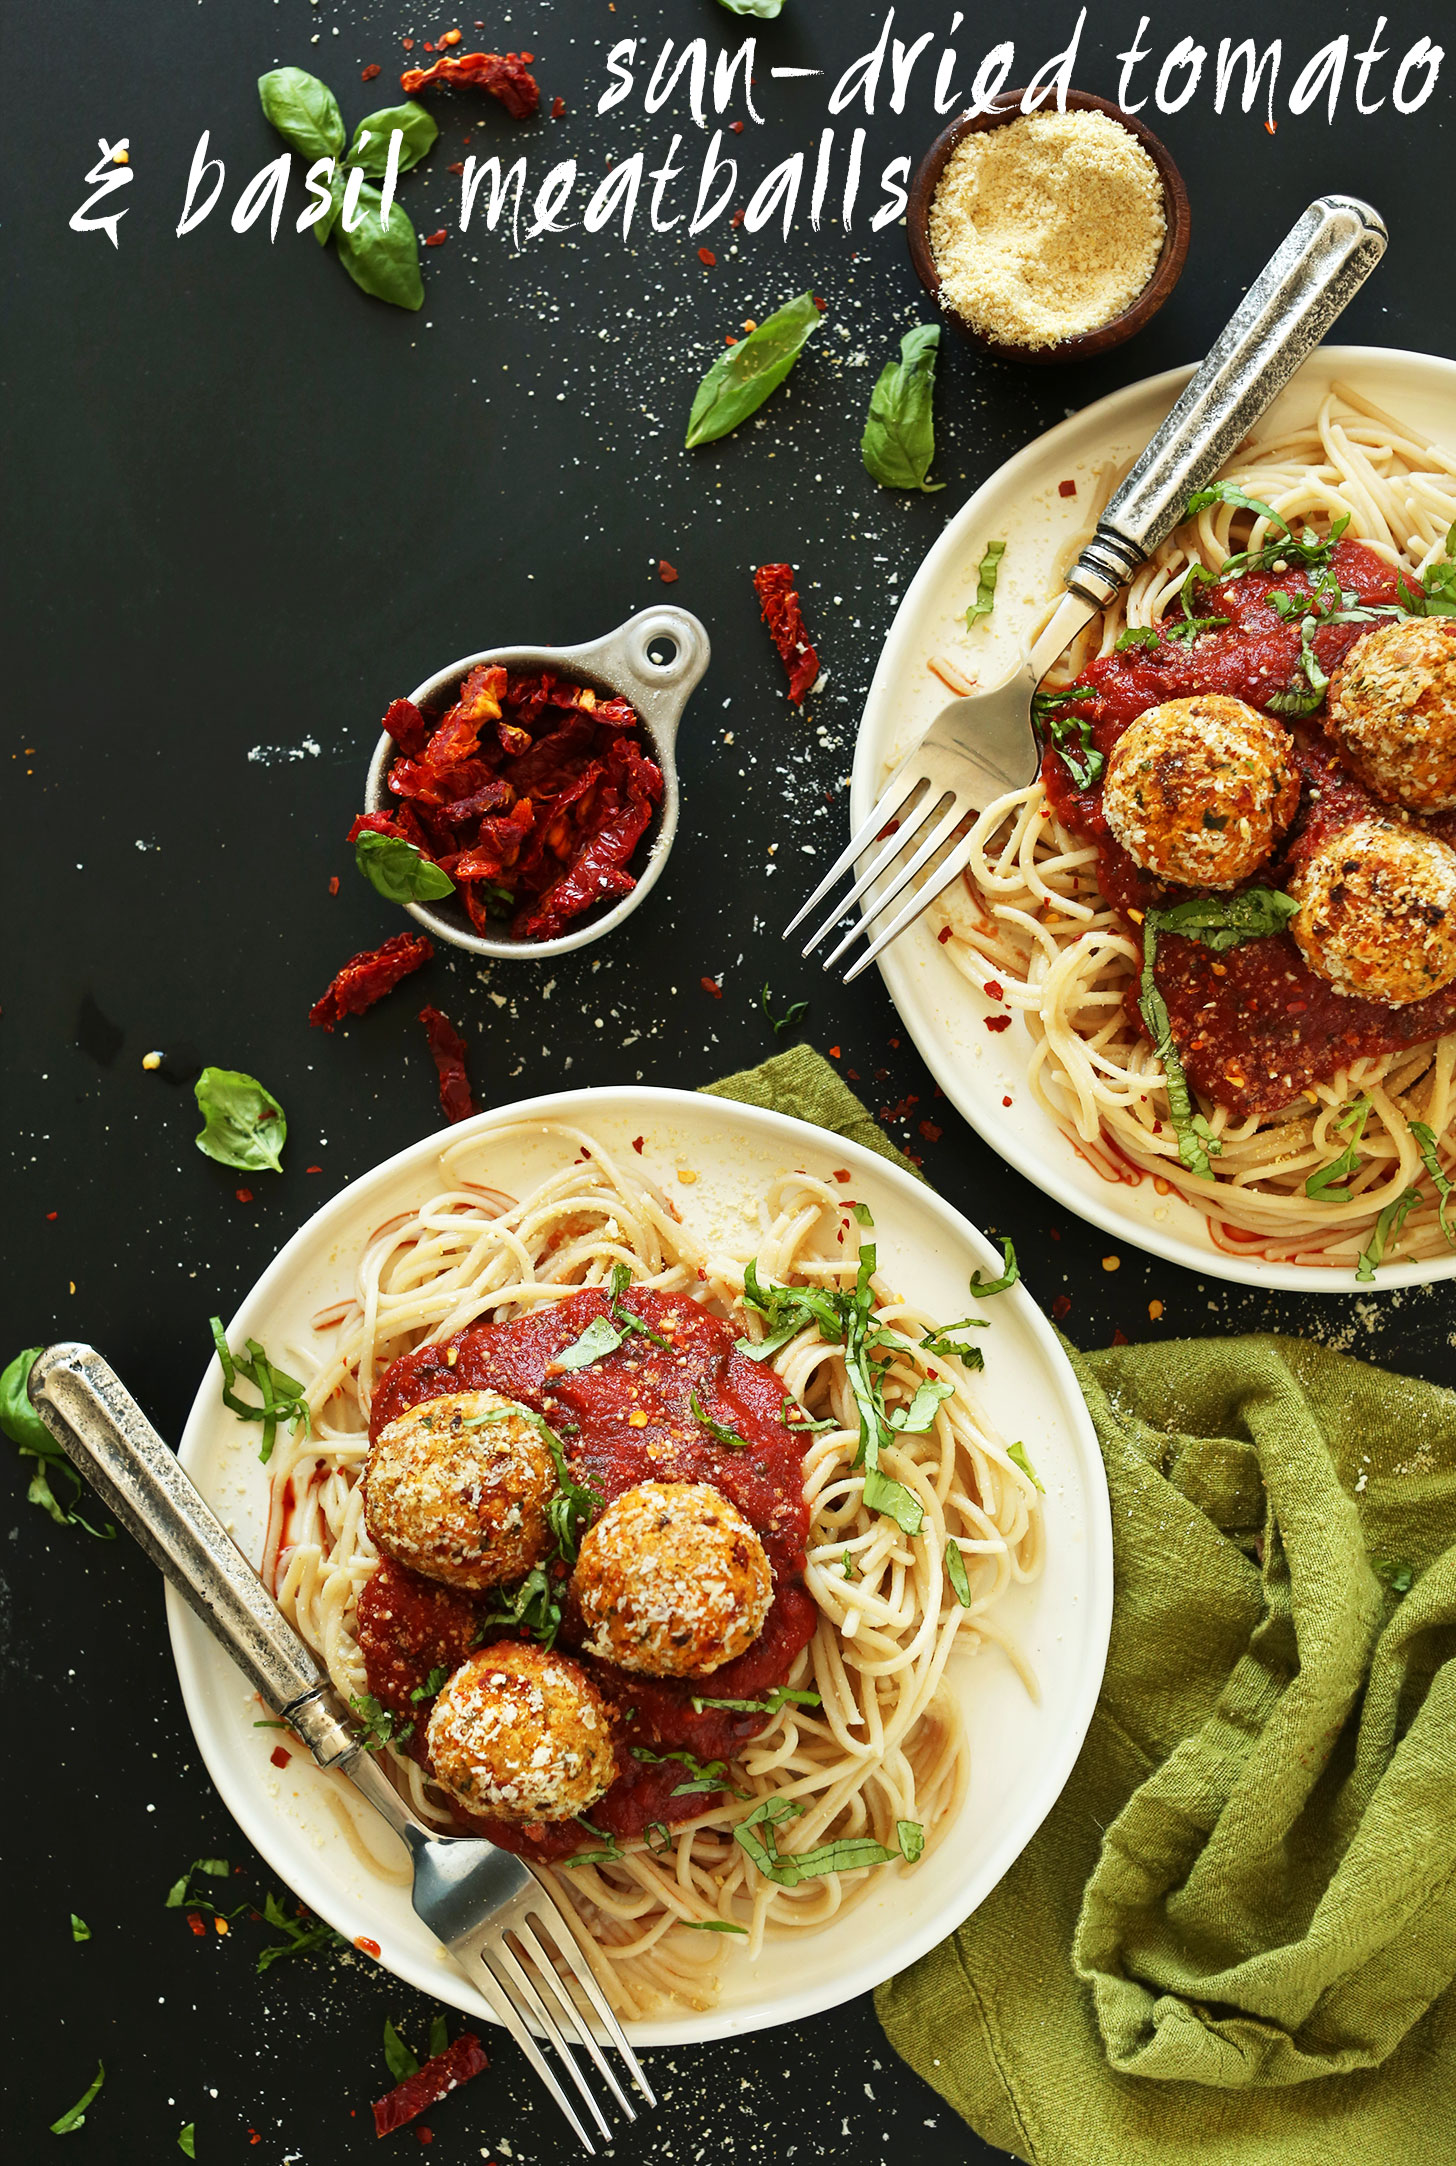 Plates of pasta with marinara and Vegan Chickpea Meatballs for a plant-based weeknight meal